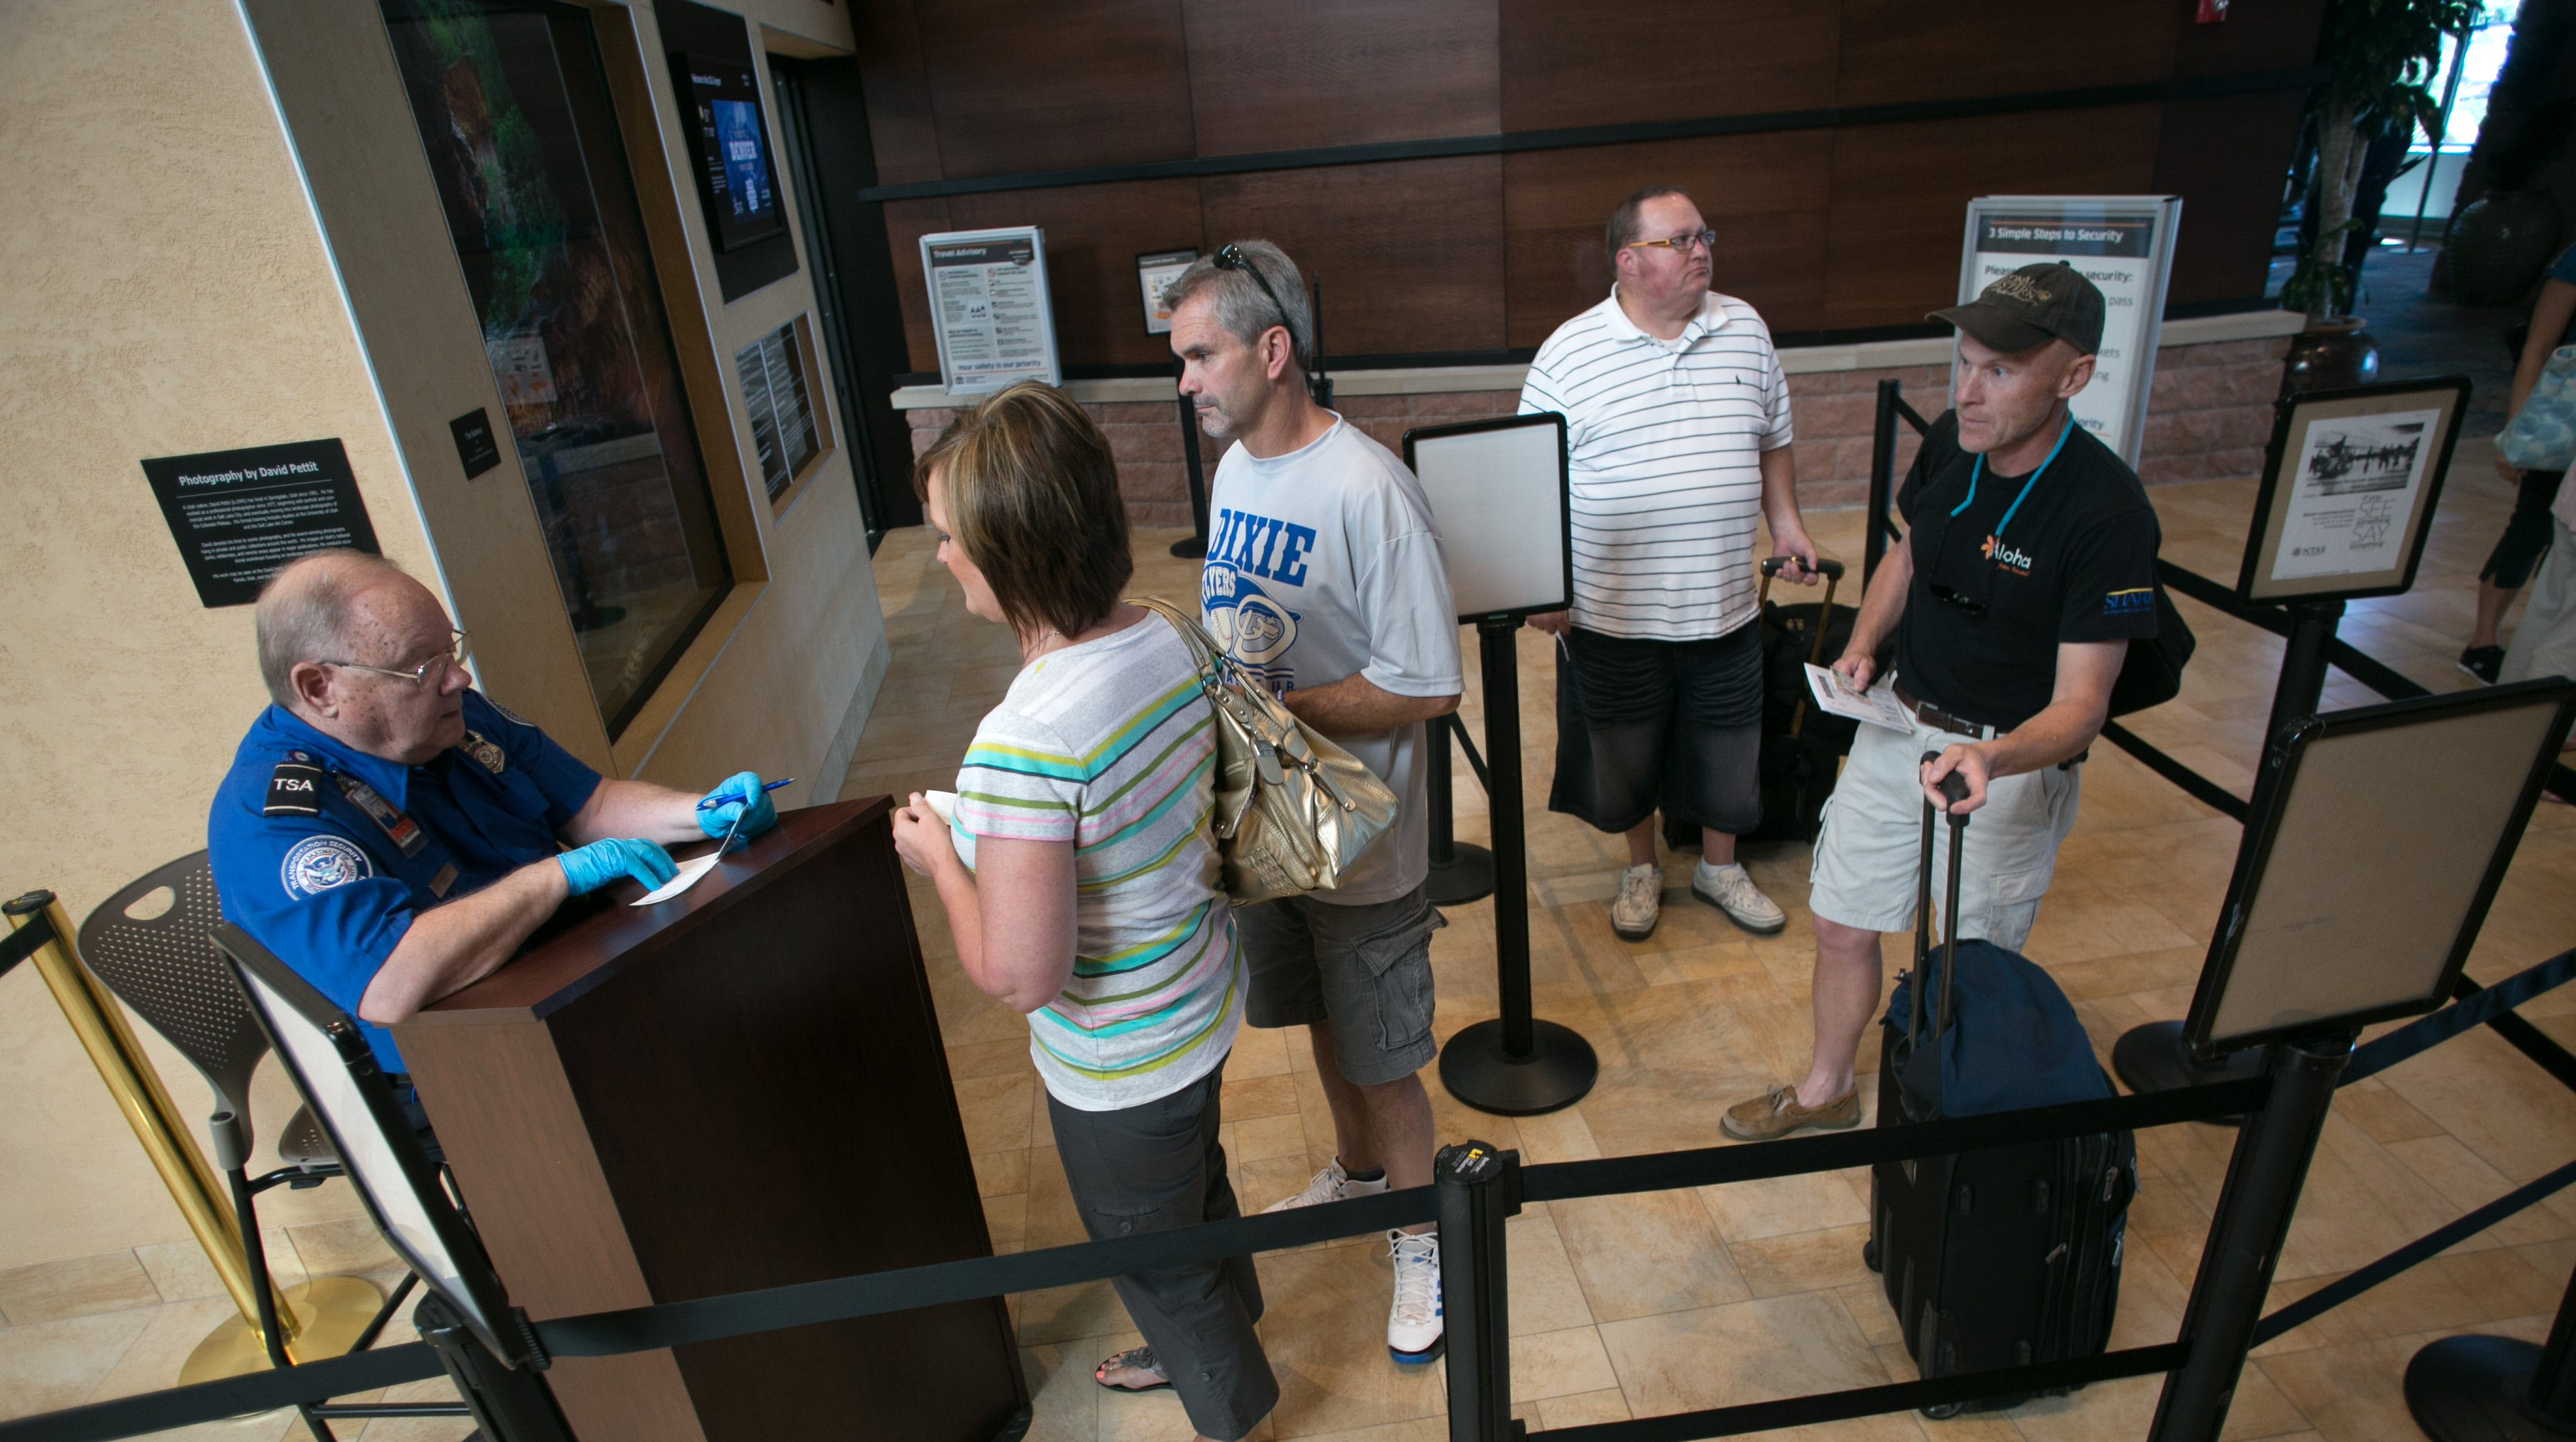 Passengers bound for Denver on the first SkyWest flight to Denver out of St. George make their way through security at the St. George Municipal Airport Thursday, June 6, 2013.